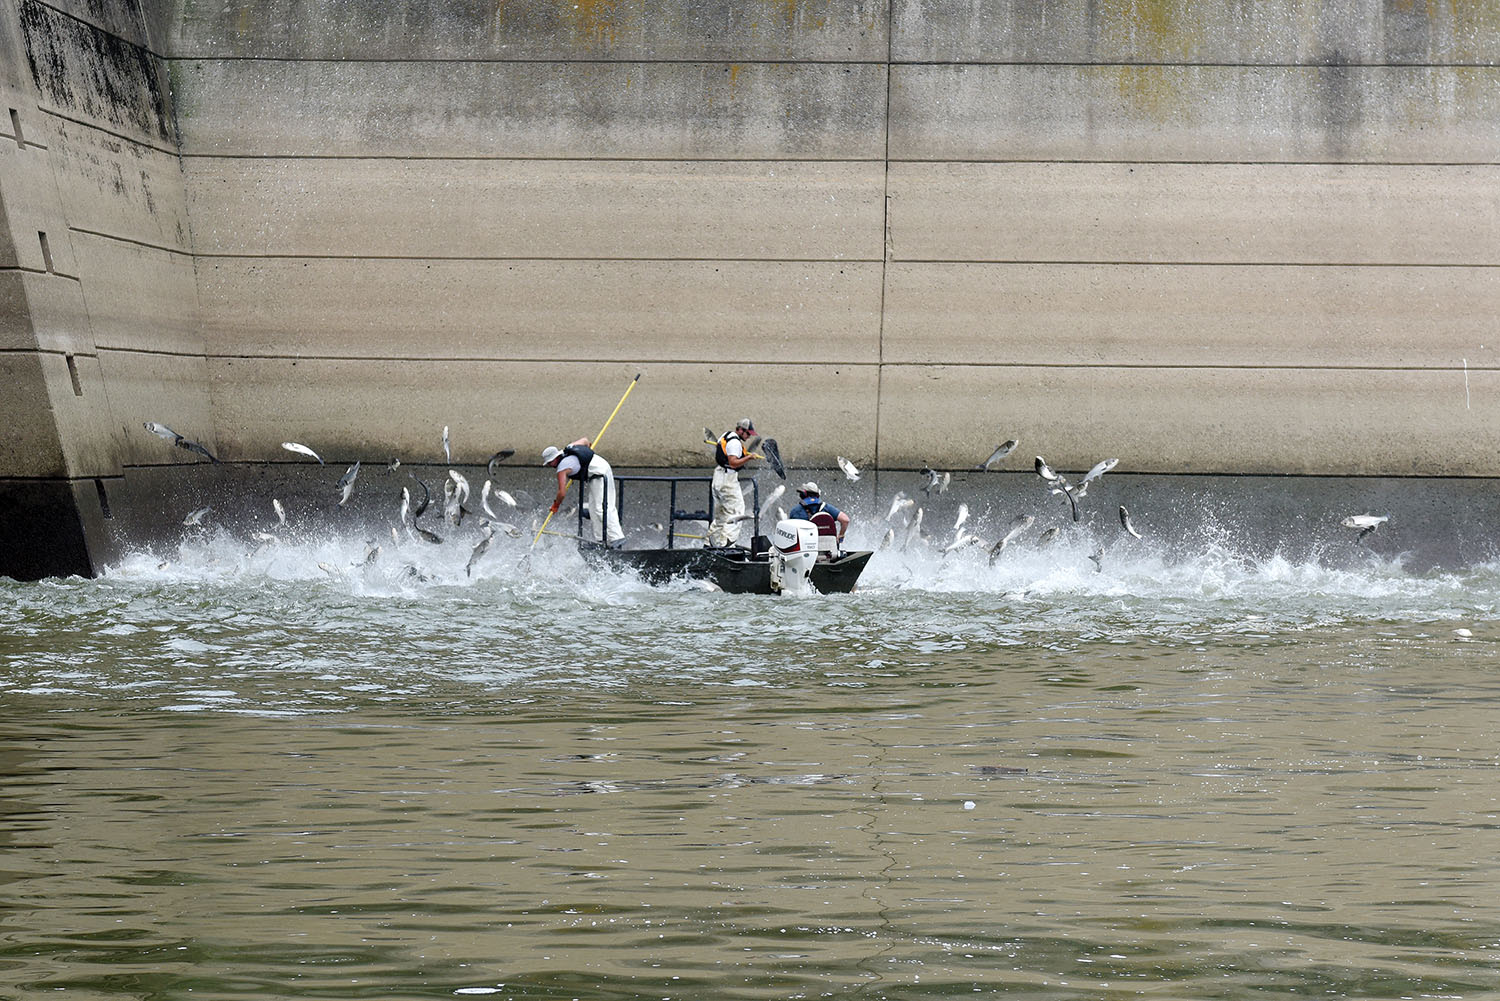 (Left to right) Josh Tompkins, fisheries biologist; Nathan Rister, fisheries technician; and Matt Combs, fisheries biologist; Kentucky Department of Fish and Wildlife Resources, demonstrate electrofishing for Asian Carp on the Cumberland River next to Barkley Dam in Grand Rivers, Ky., July 30, 2019. The U.S. Army Corps of Engineers, U.S. Fish and Wildlife Service, Kentucky Department of Fish and Wildlife Resources, U.S. Geological Survey and Tennessee Wildlife Resources Agency are collaborating on the deployment of a bio-acoustic fish fence on the downstream side of Barkley Lock as part of a test of this sound deterrent to reduce the use of the locks by Asian Carp. (Corps of Engineers photo by Leon Roberts)